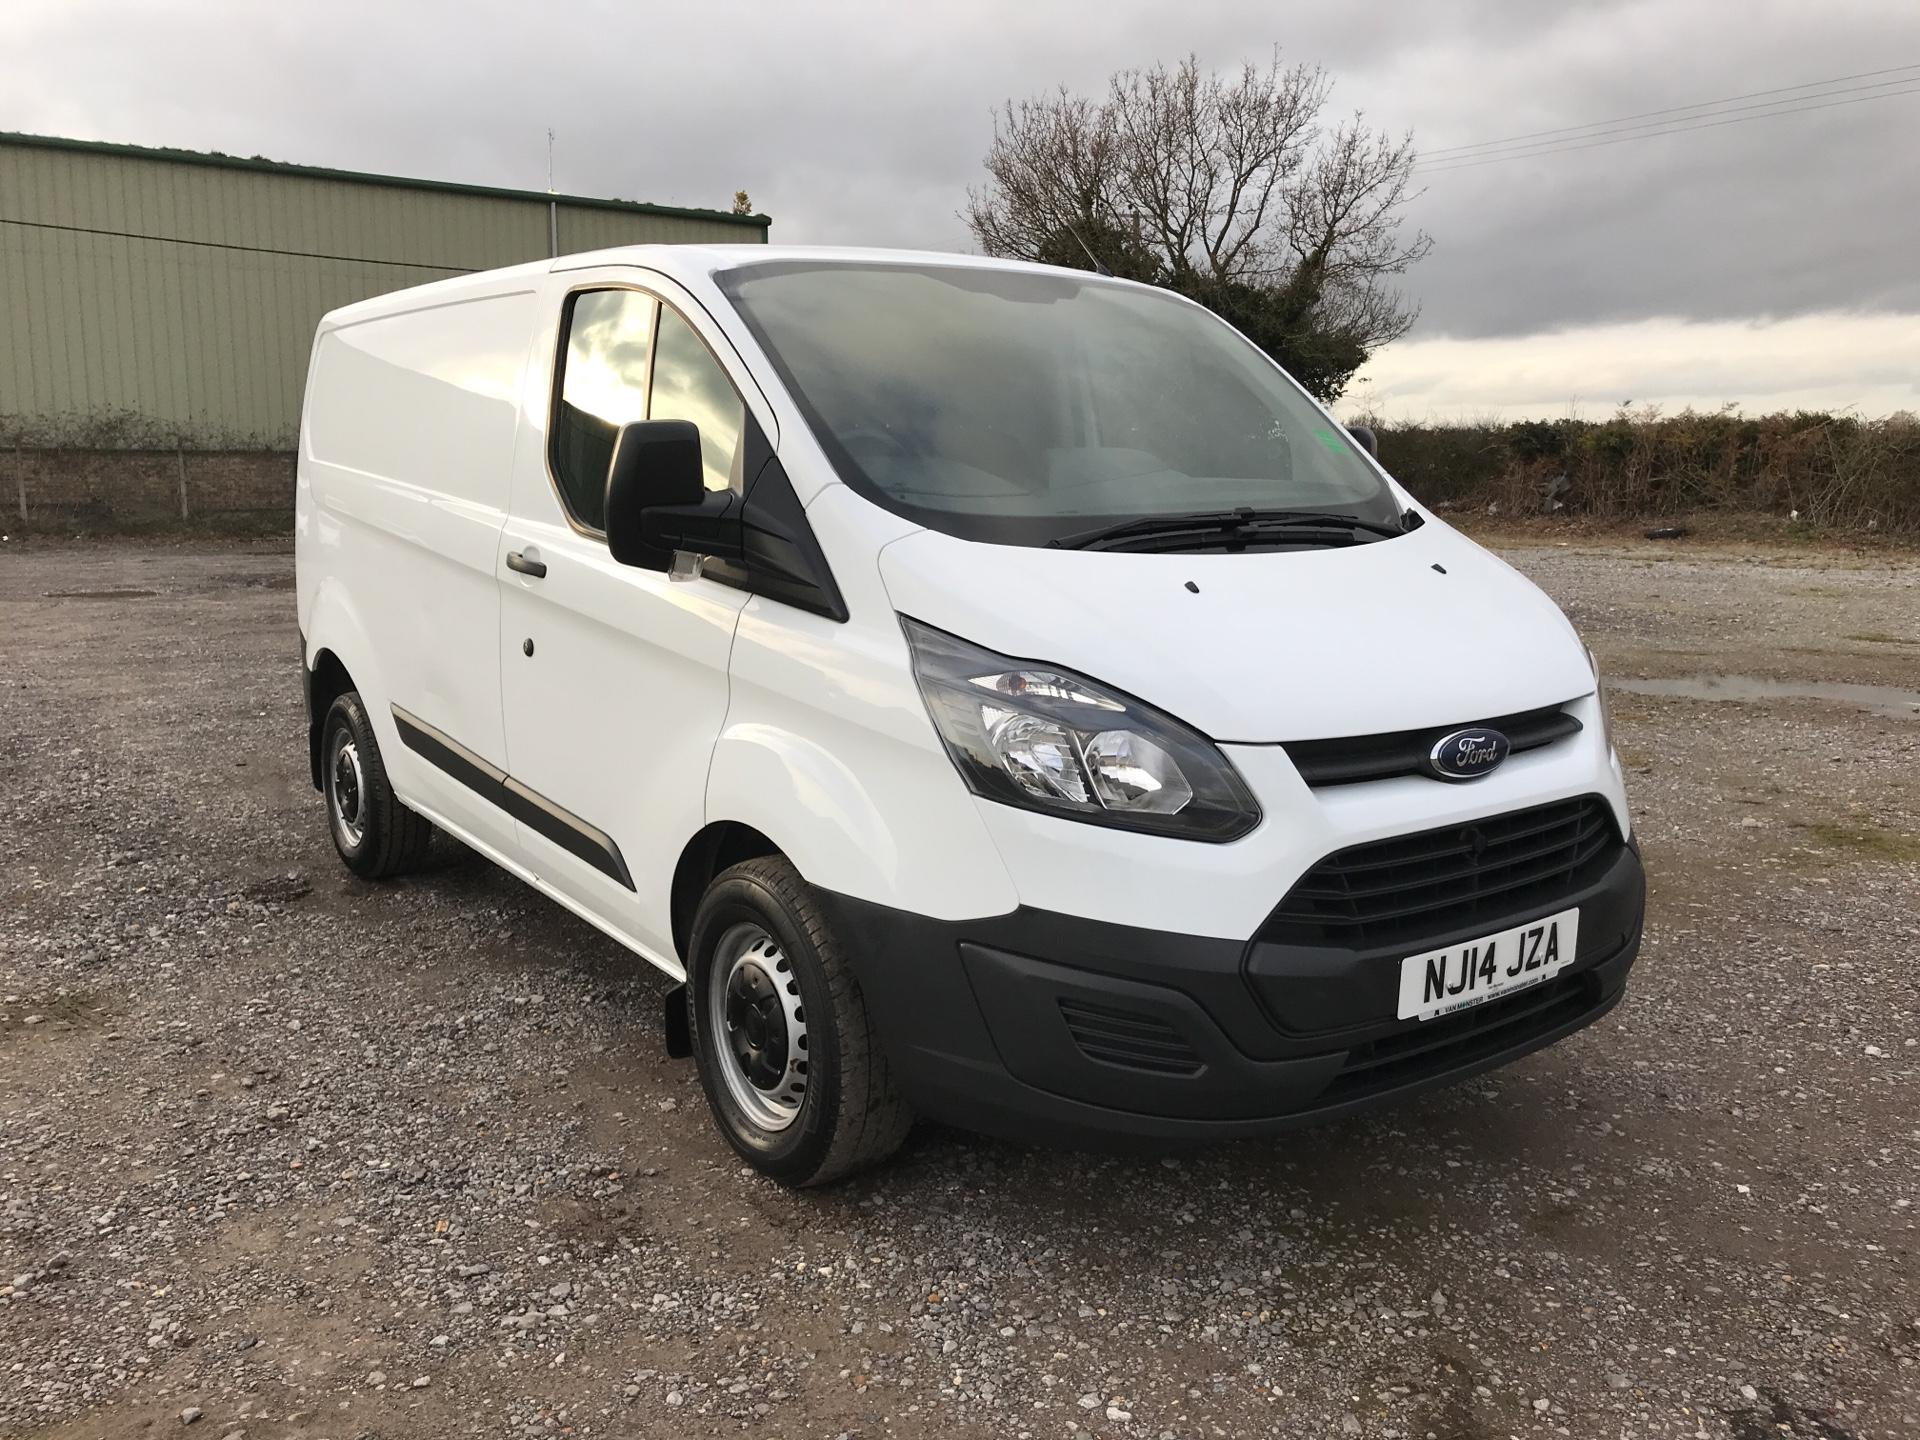 2014 Ford Transit Custom 290 L1 DIESEL FWD 2.2 TDCI 100PS LOW ROOF VAN EURO 5 (NJ14JZA)